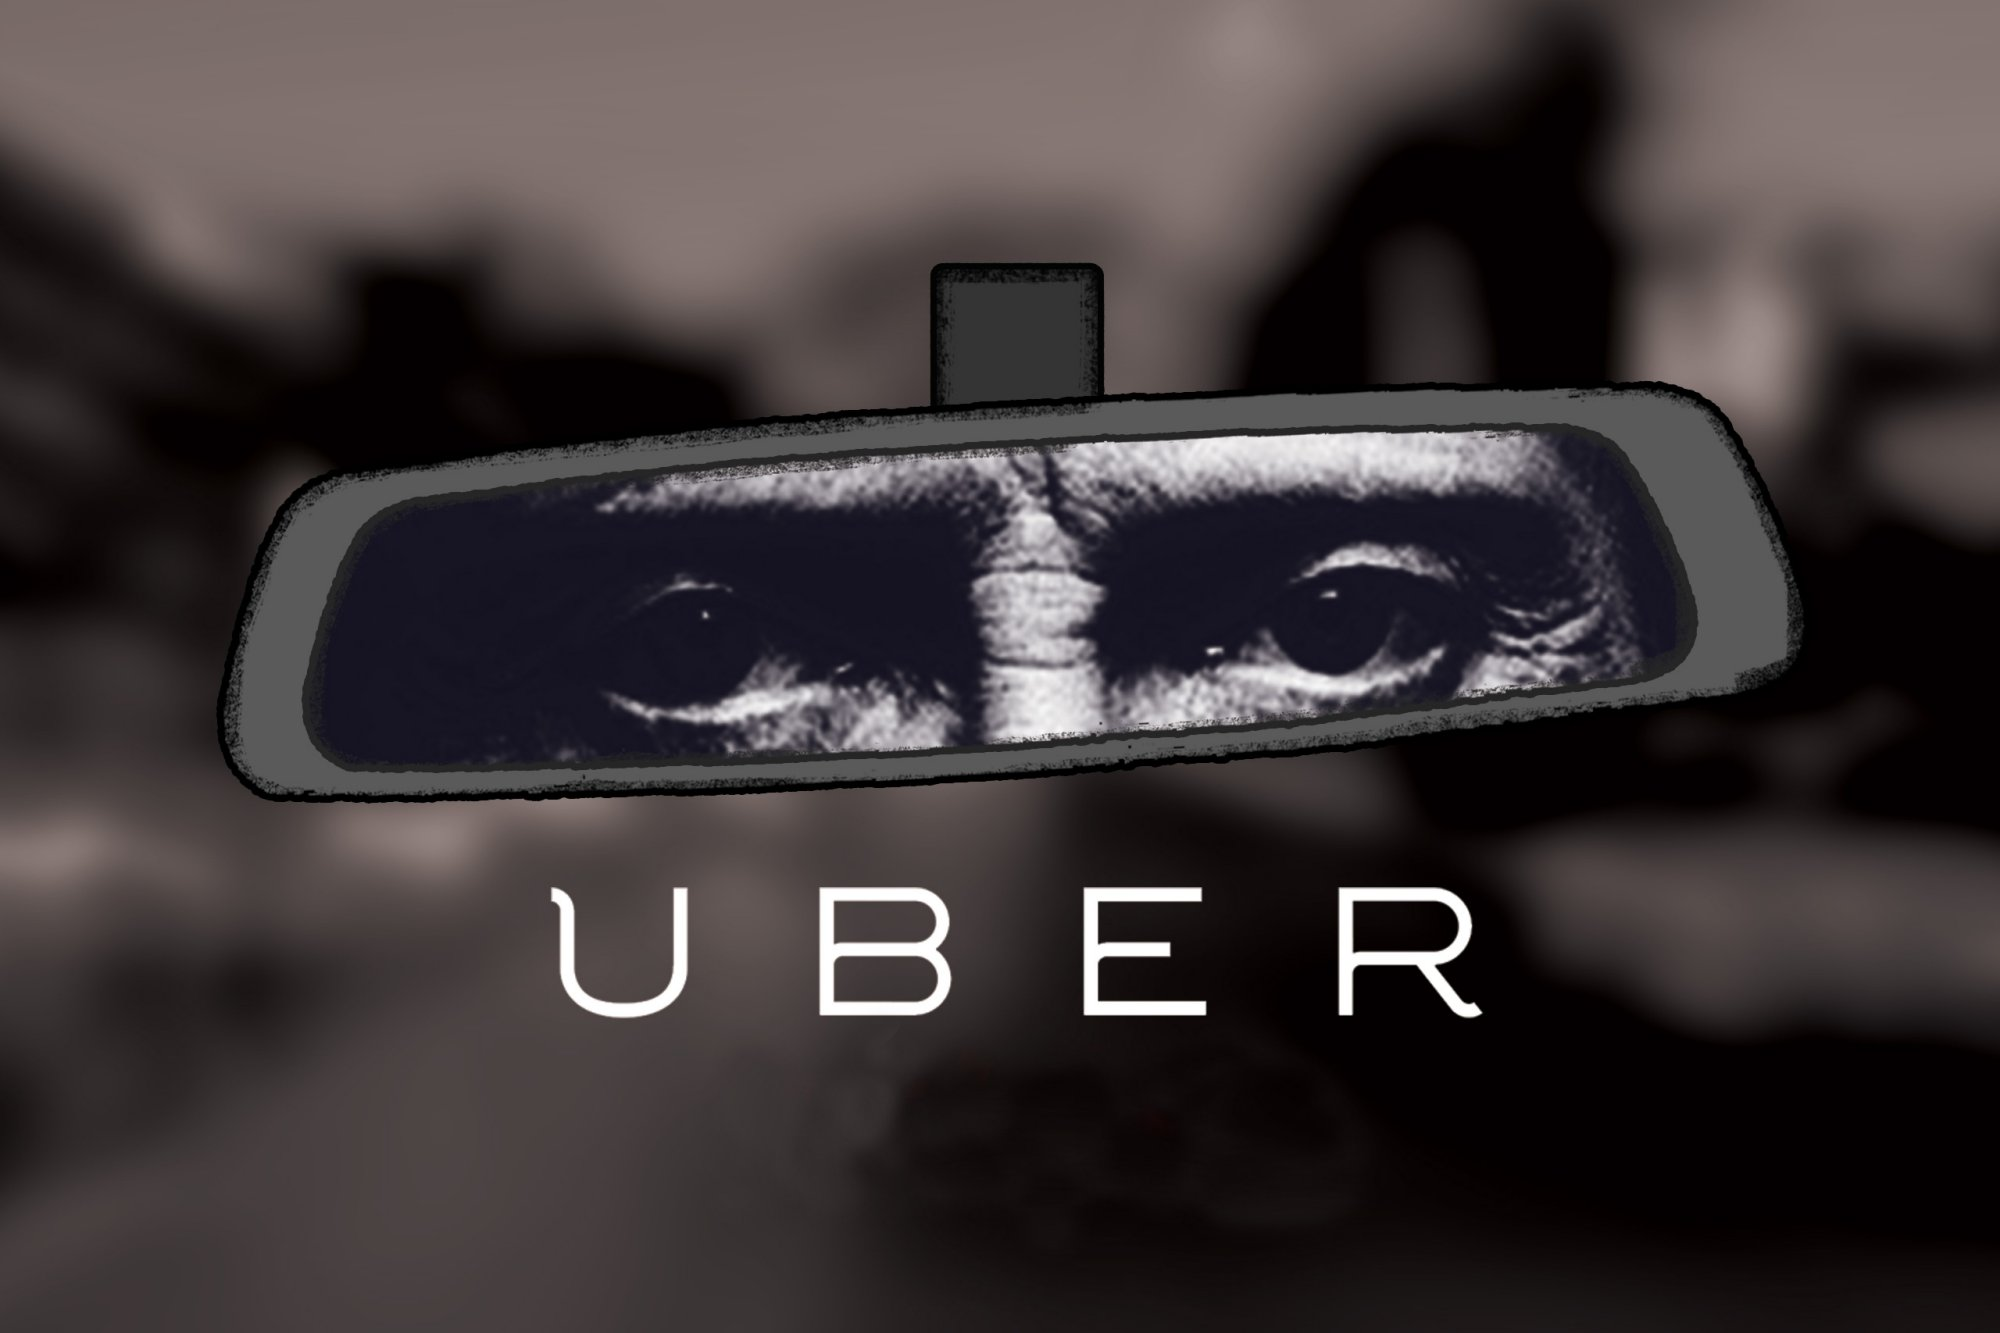 Don't get into that Uber vehicle without a criminal record ...